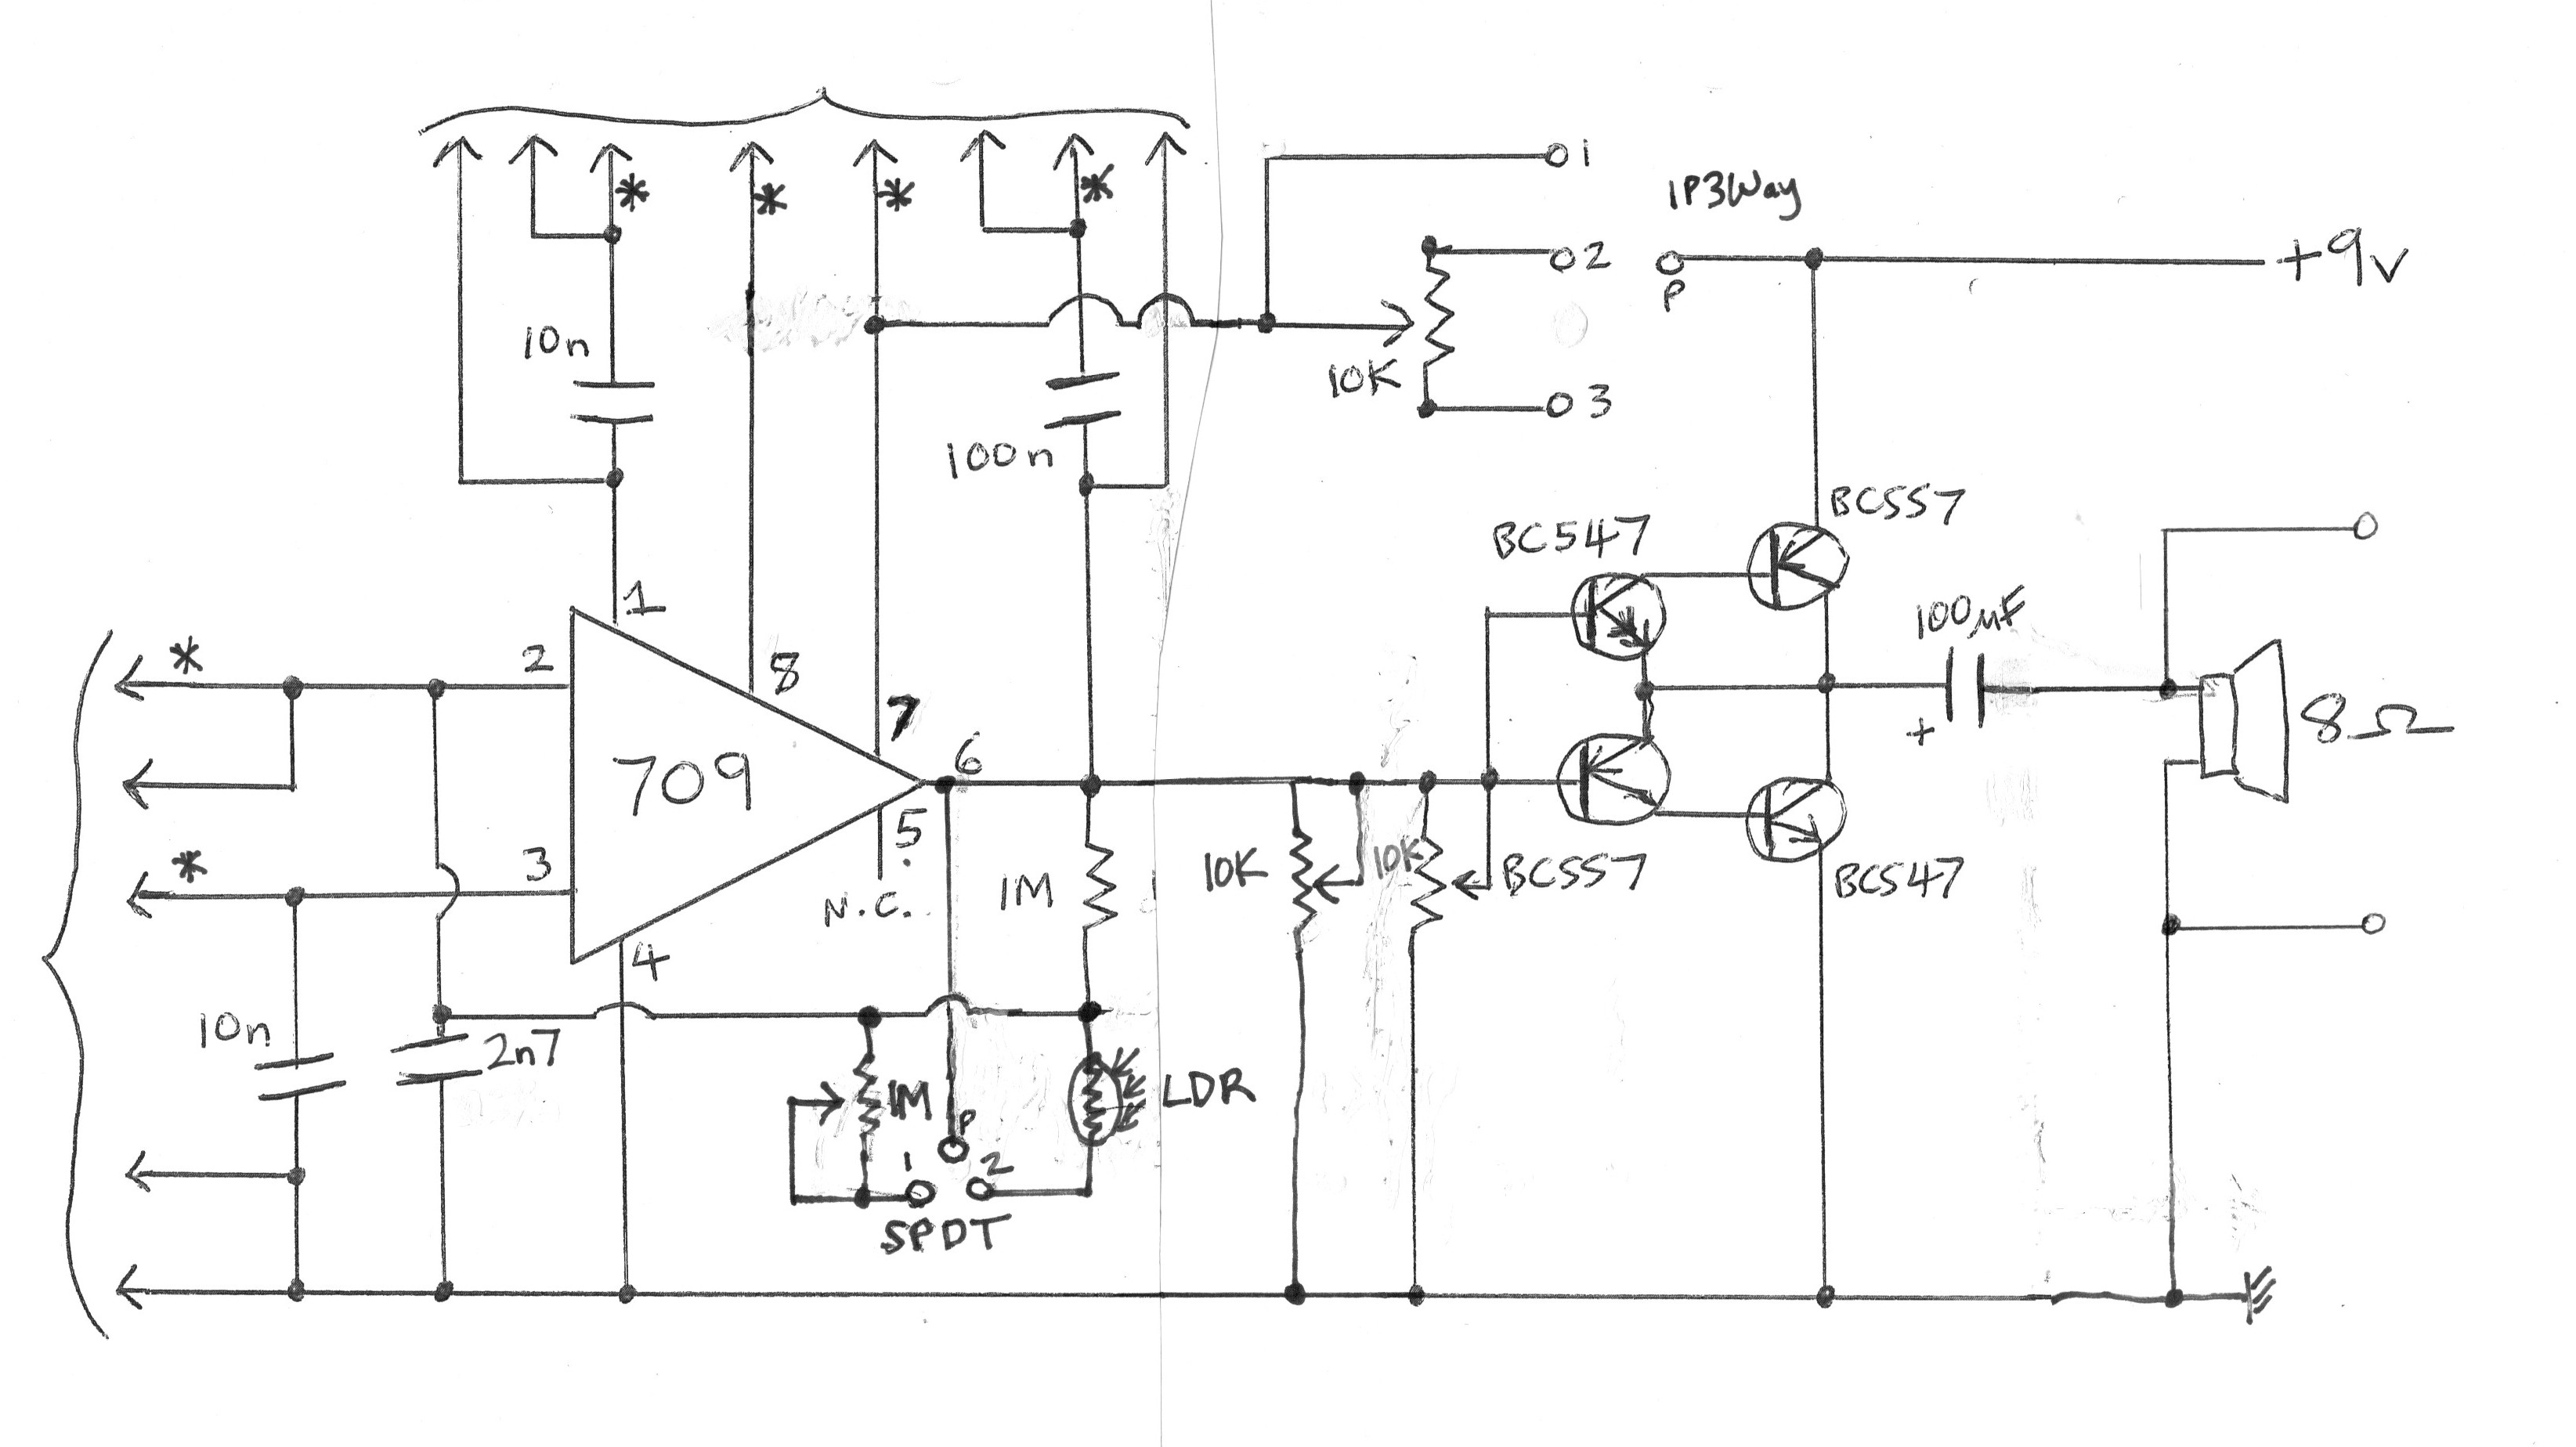 The Cracklephone Music Electronics Ldr Circuit Diagram 9v Circuit3